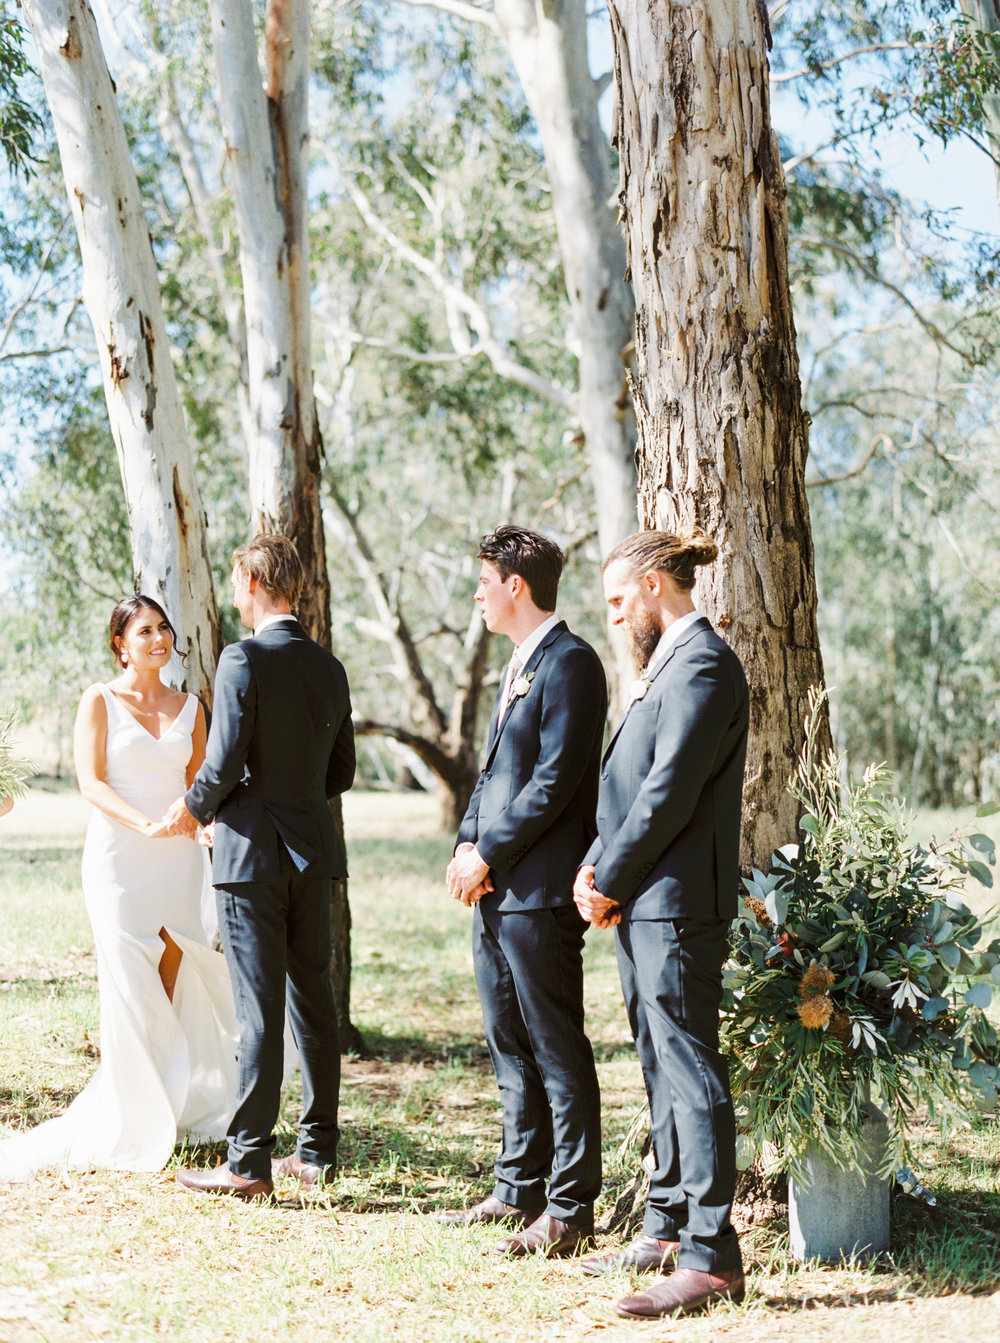 00027- Olive Tree Mediterranean Wedding in Mudgee NSW Australia Fine Art Film Wedding Lifestyle Photographer Sheri McMahon_.jpg